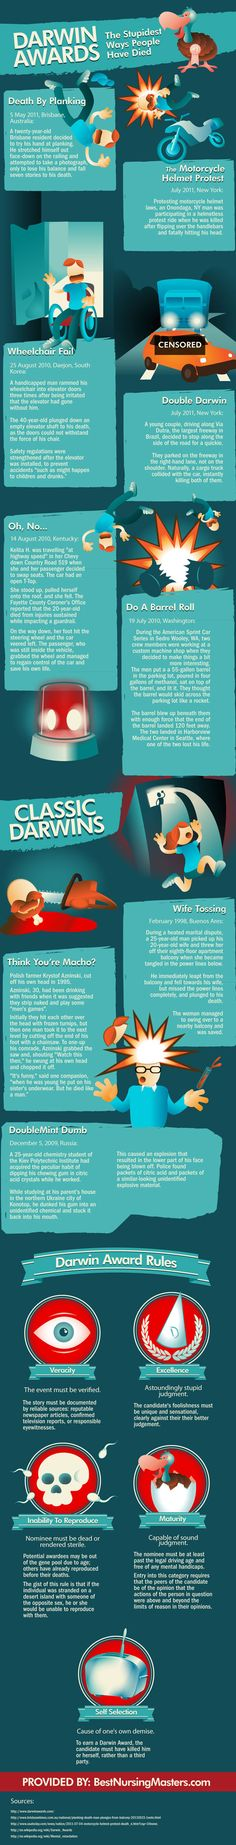 LOL / The Darwin Awards. an infographic showing some of the stupidest ways people have died. Darwin Awards, Funny Drawings, Stupid People, Funny Relationship, Funny Signs, Funny Fails, Christmas Humor, Best Funny Pictures, Funny Images